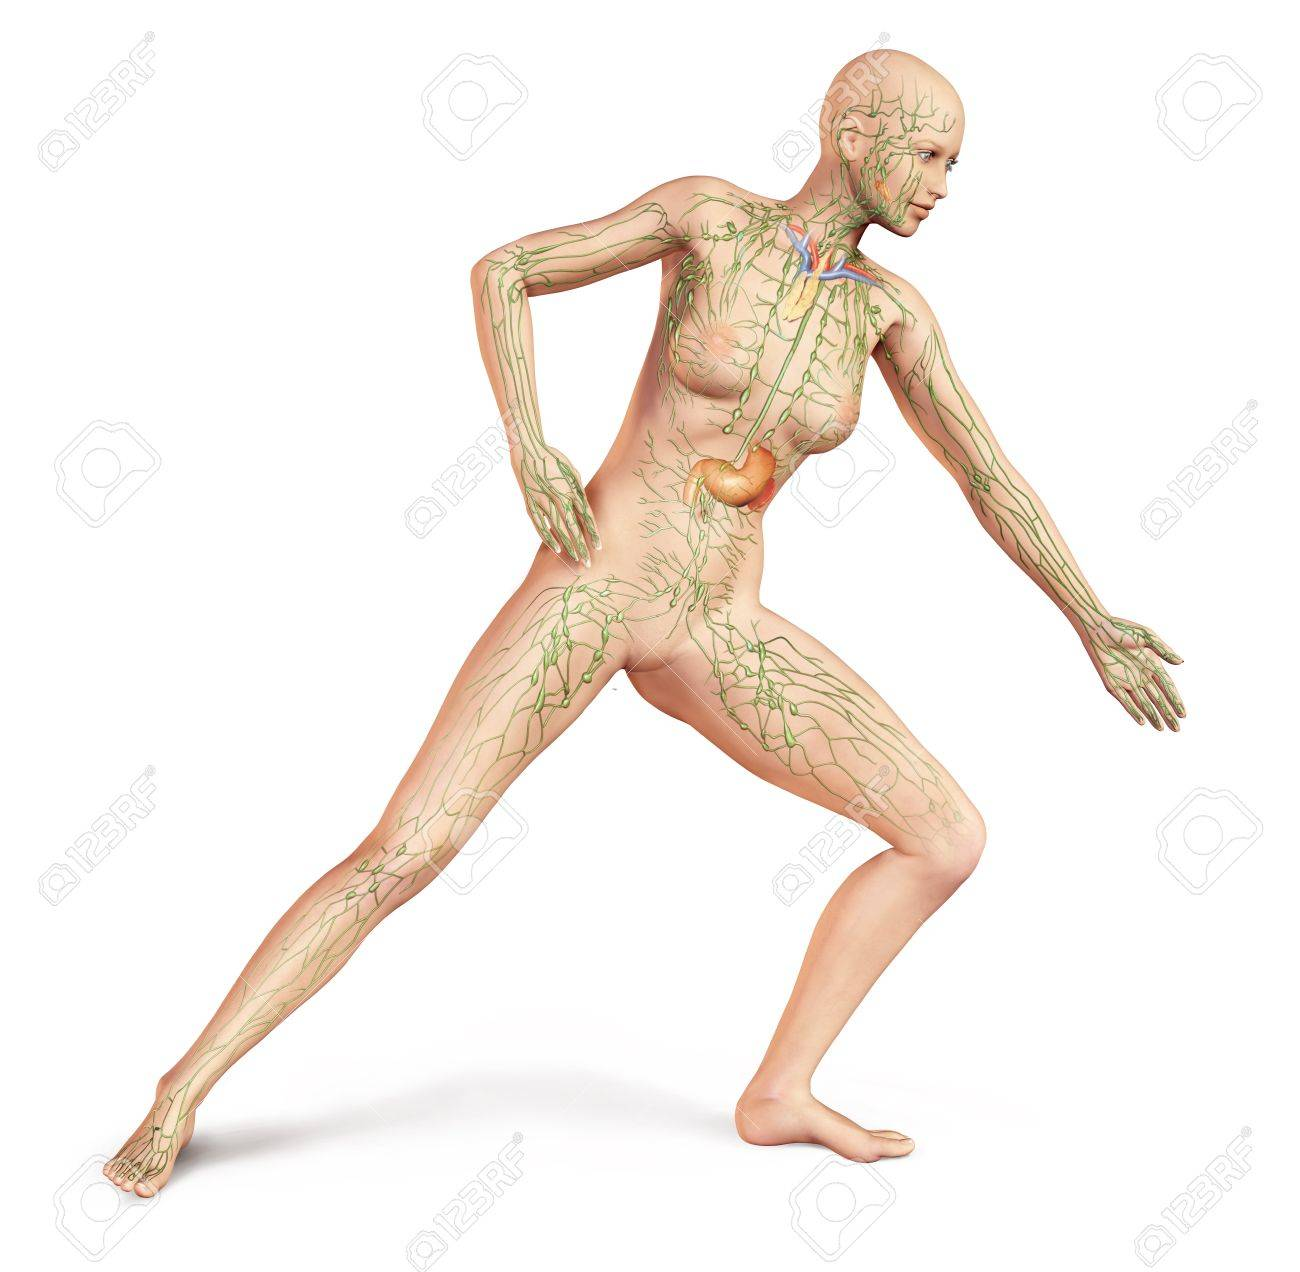 female naked body, in dynamic posture, with full lymphatic system